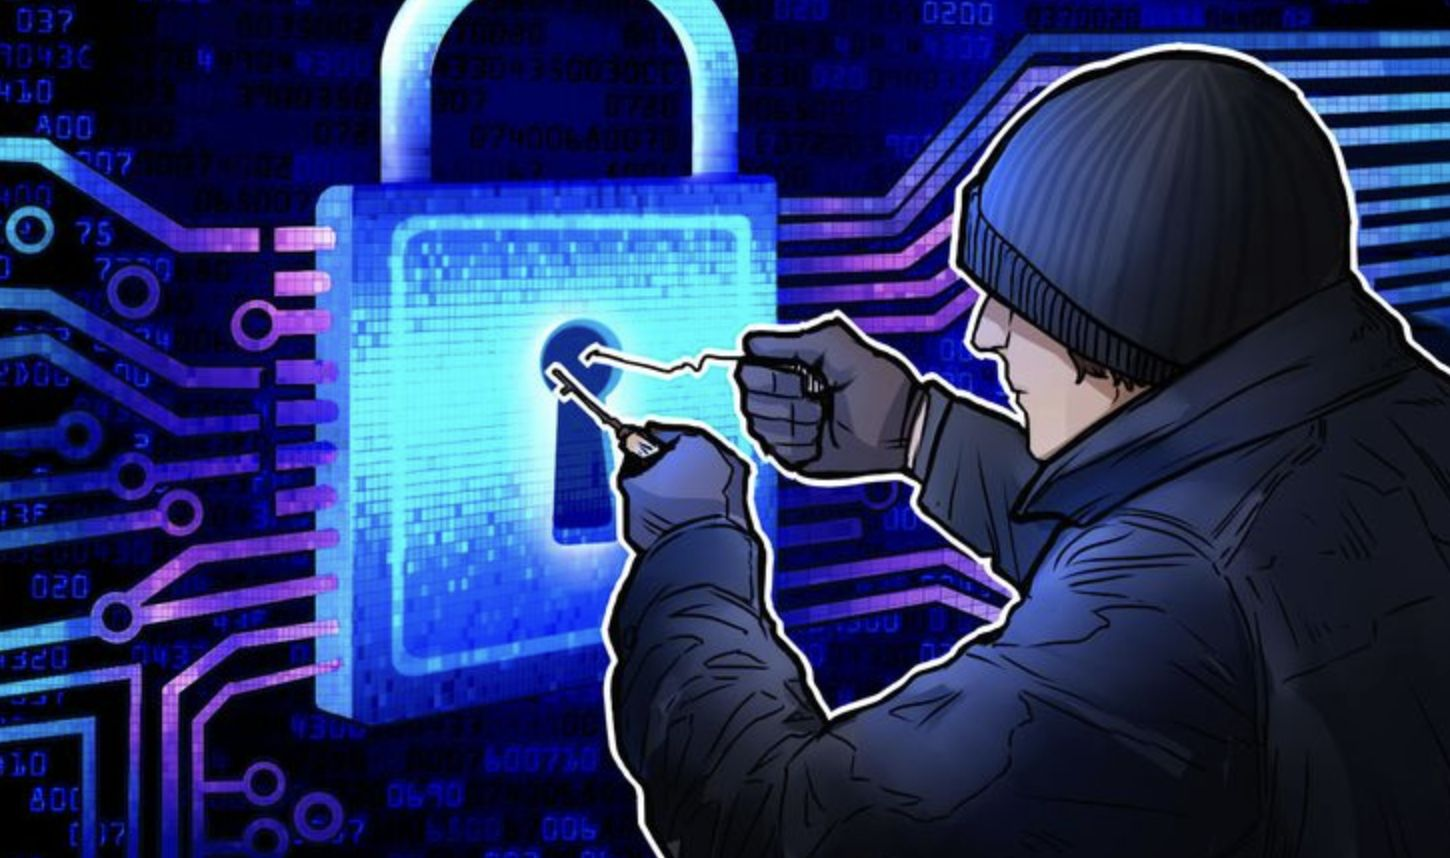 /how-crypto-thieves-affect-the-financial-security-crypto-should-avail-f58d53f9b148 feature image